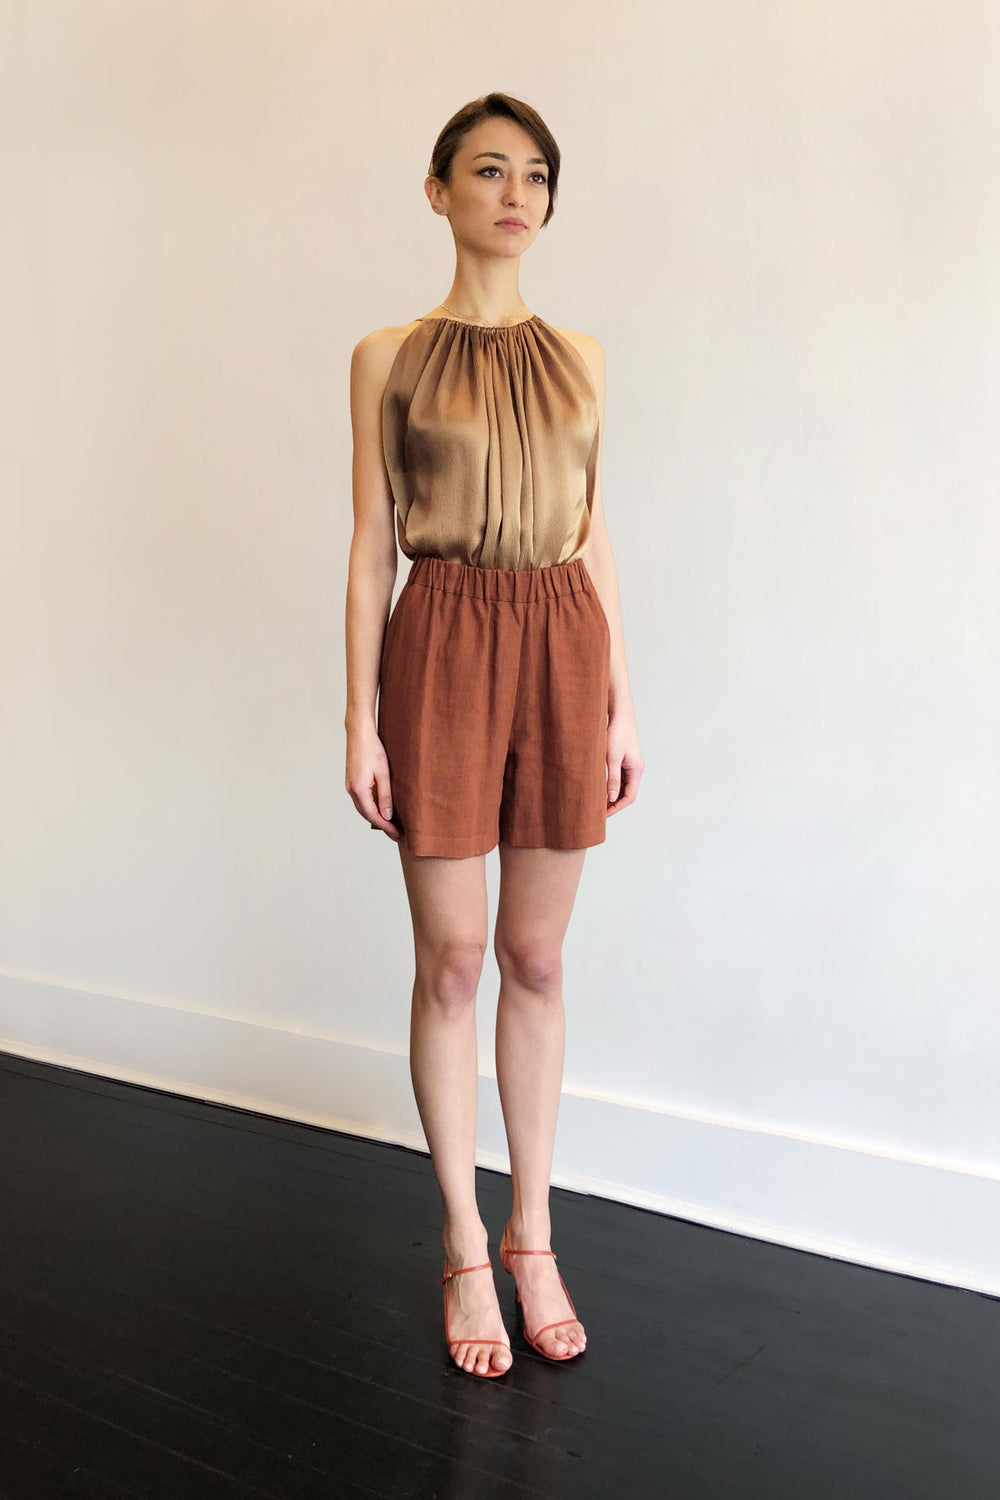 Fashion Designer CARL KAPP collection | Nano Brown Copper Linen Shorts | Sydney Australia